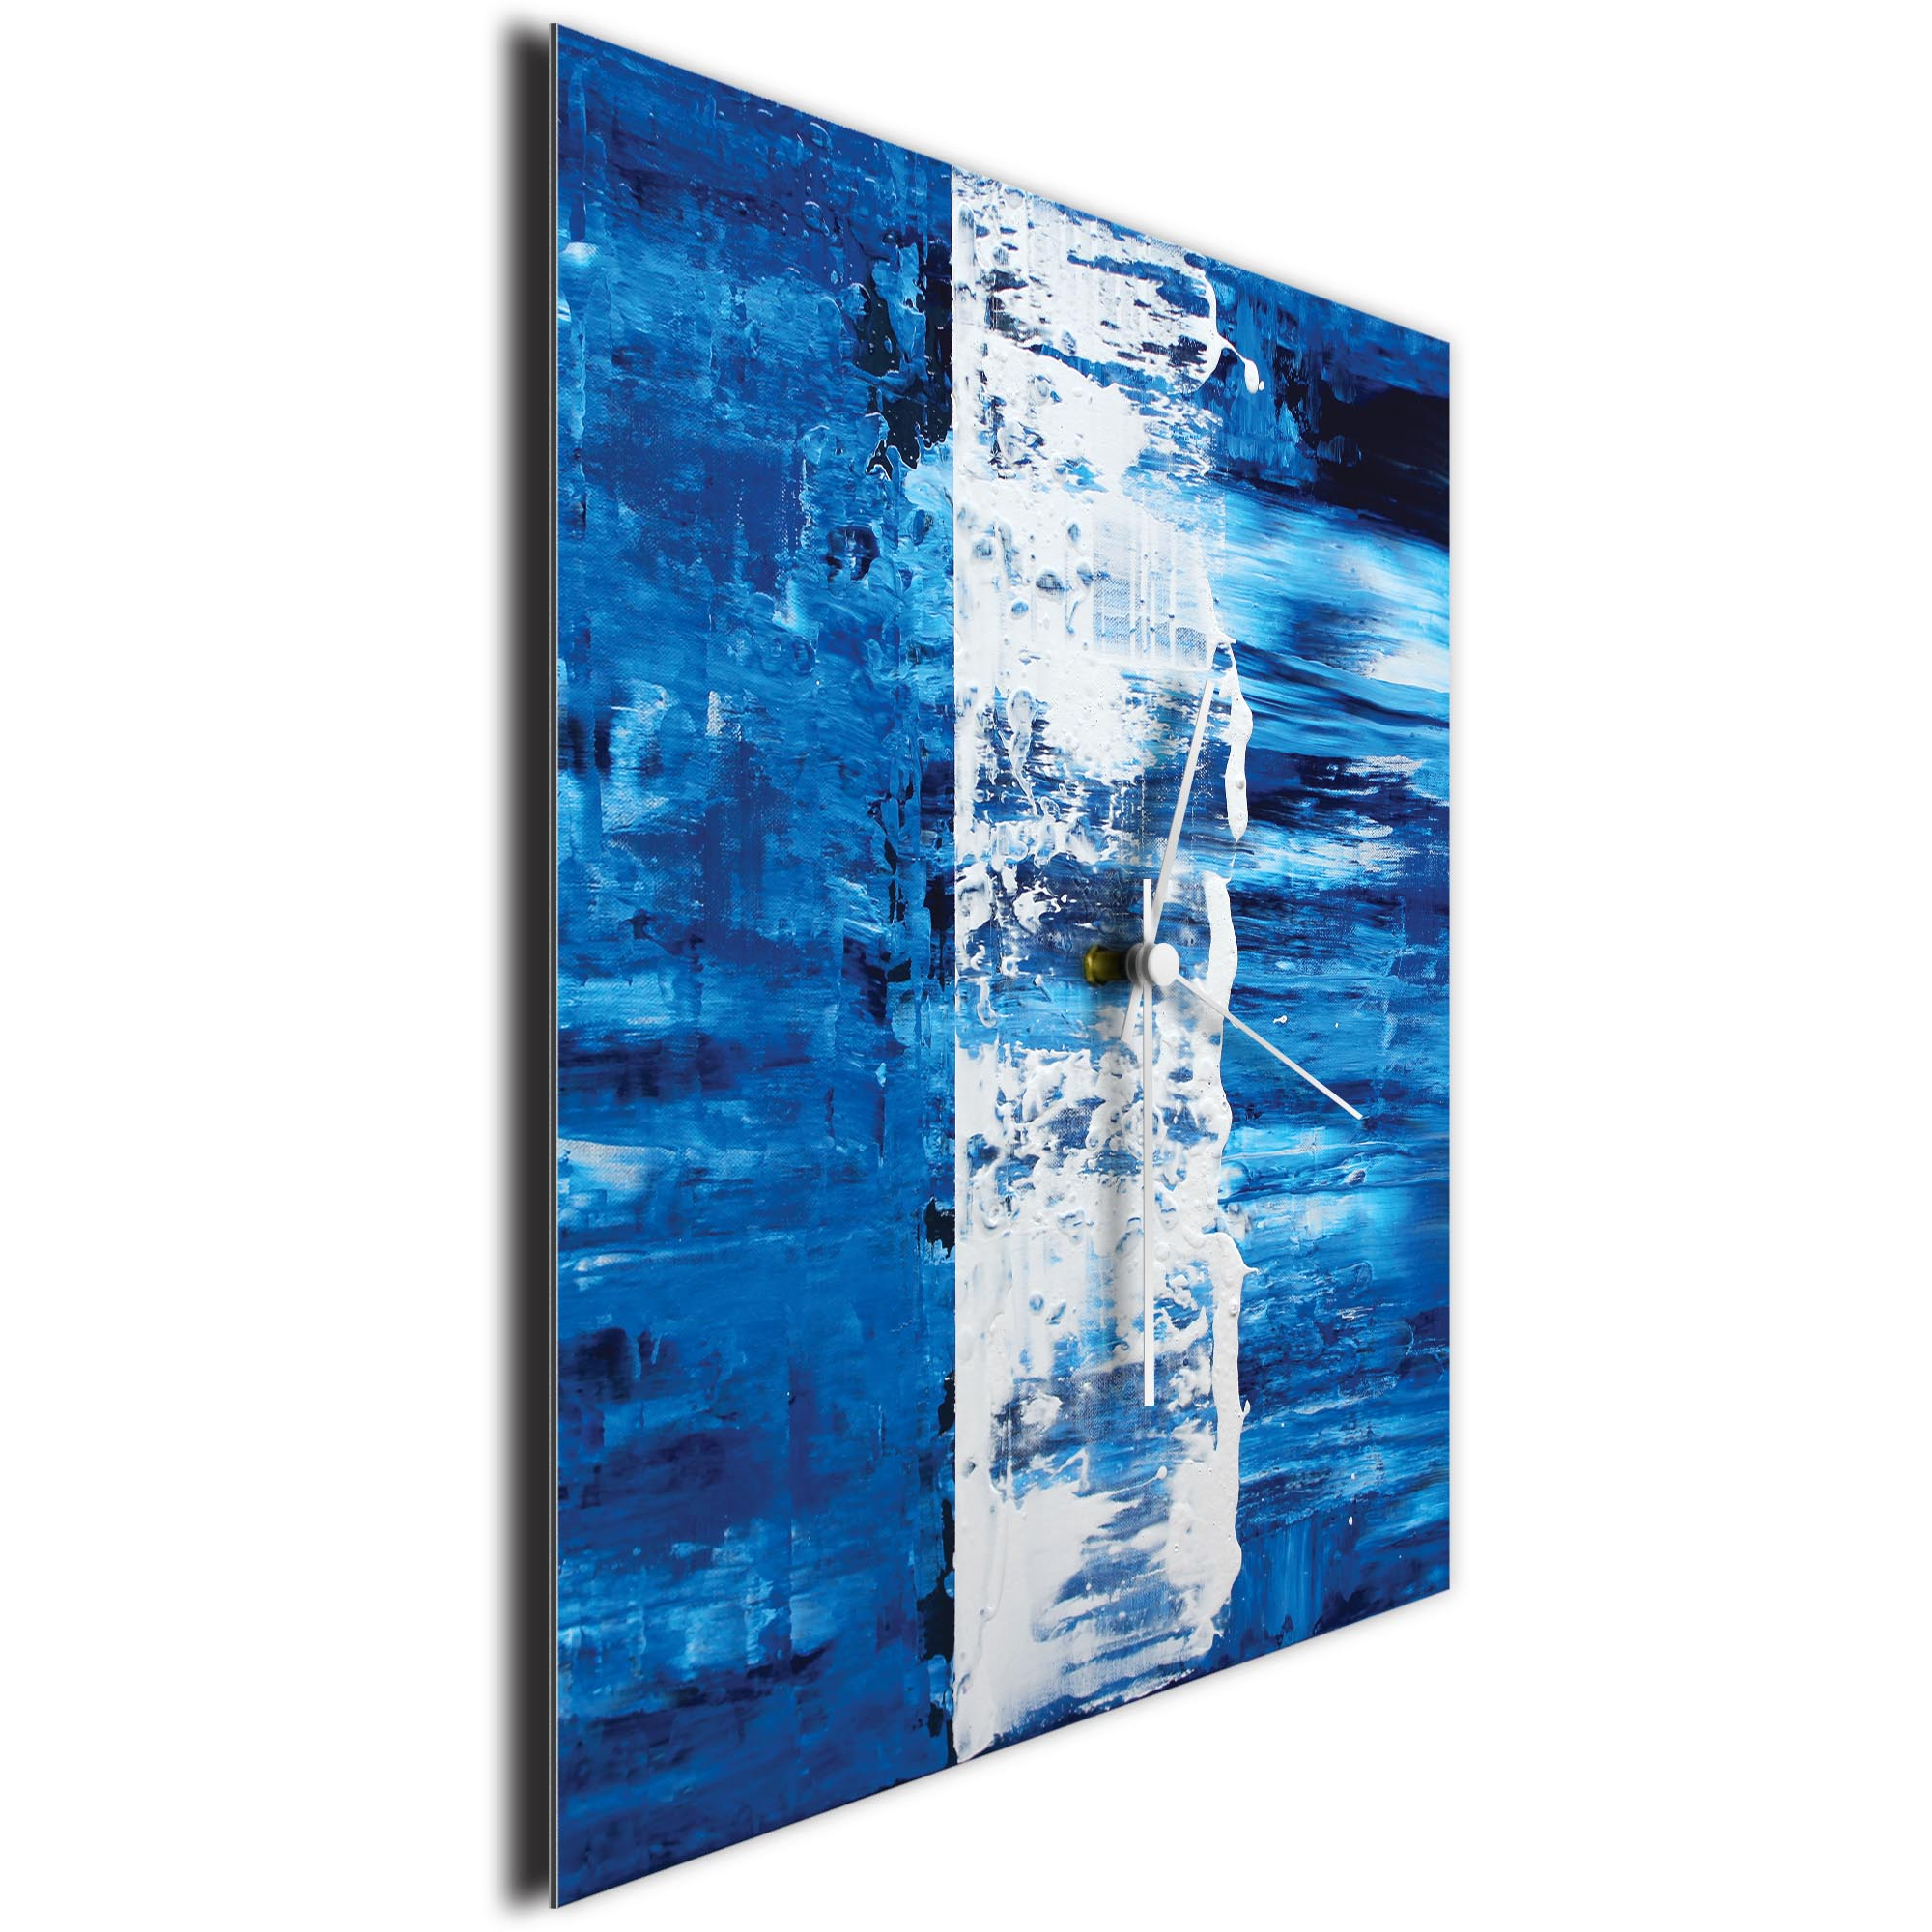 Blue Street Square Clock by Mendo Vasilevski - Urban Abstract Home Decor - Image 3